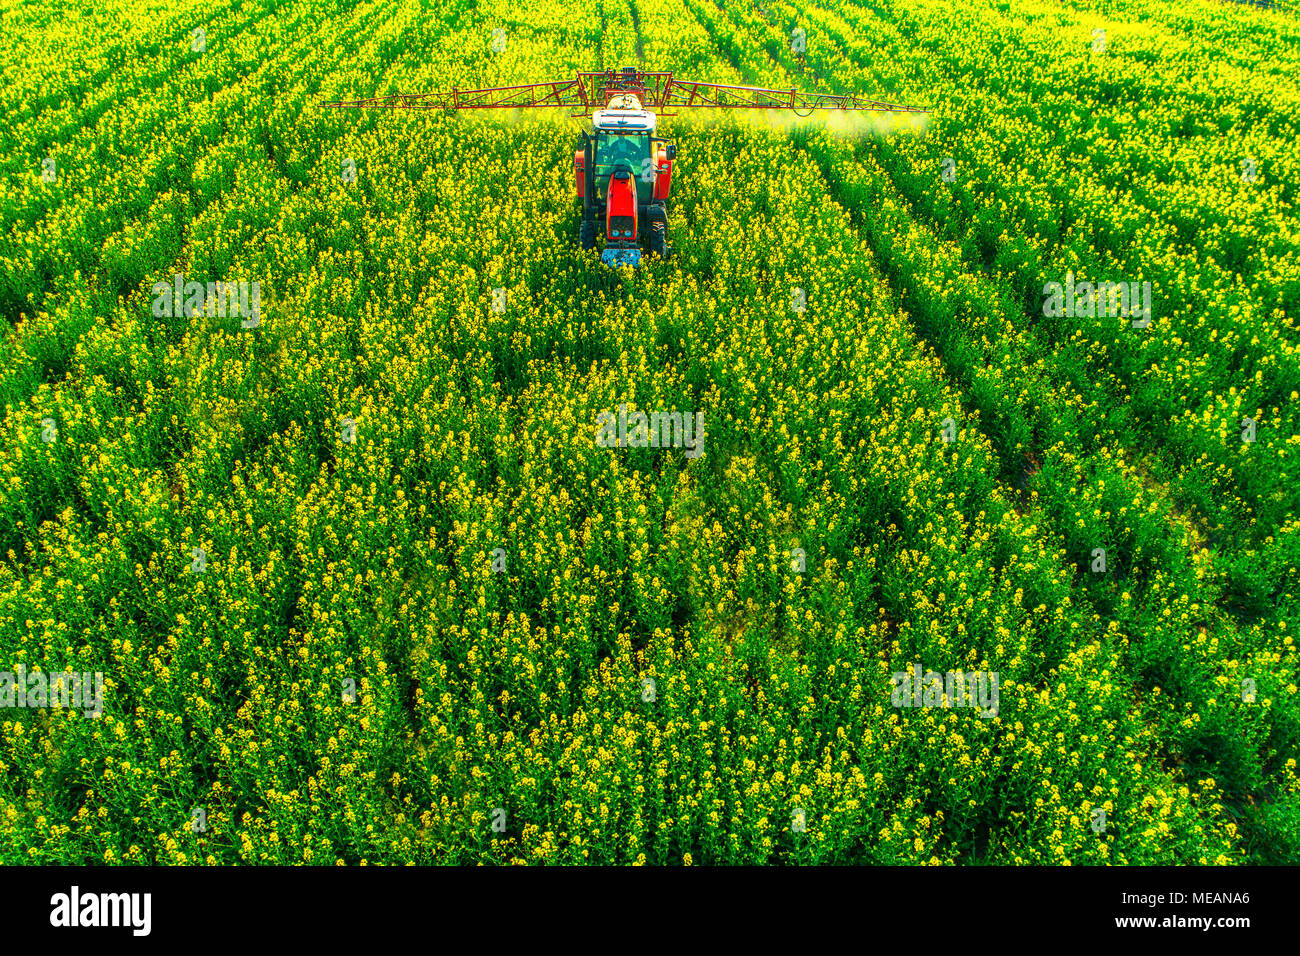 Aerial view of farming tractor plowing and spraying on field. Stock Photo